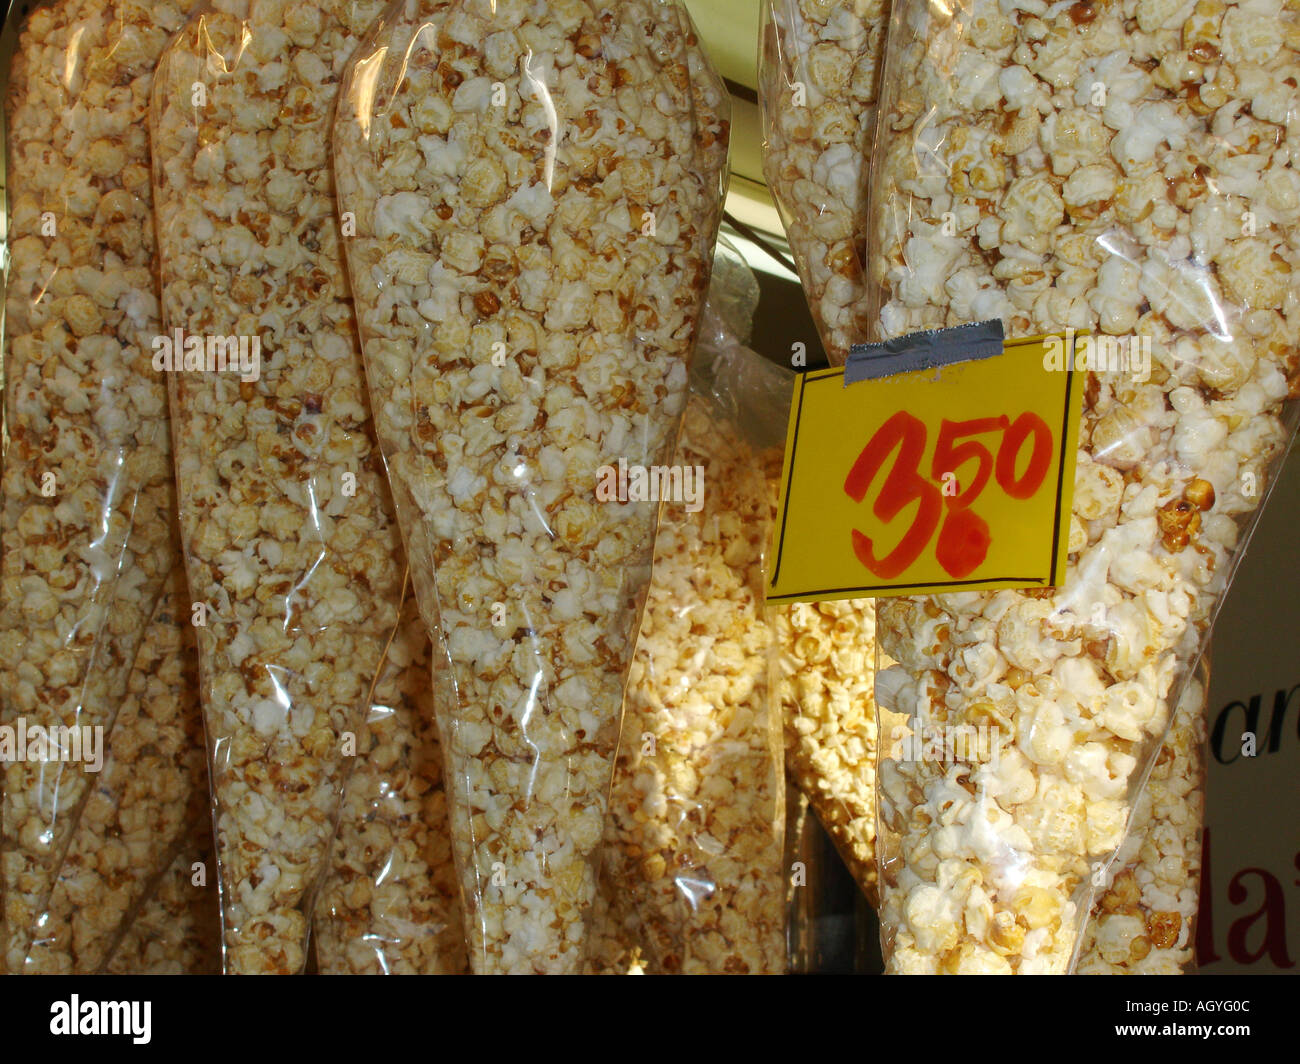 display of popcorn for sale - Stock Image